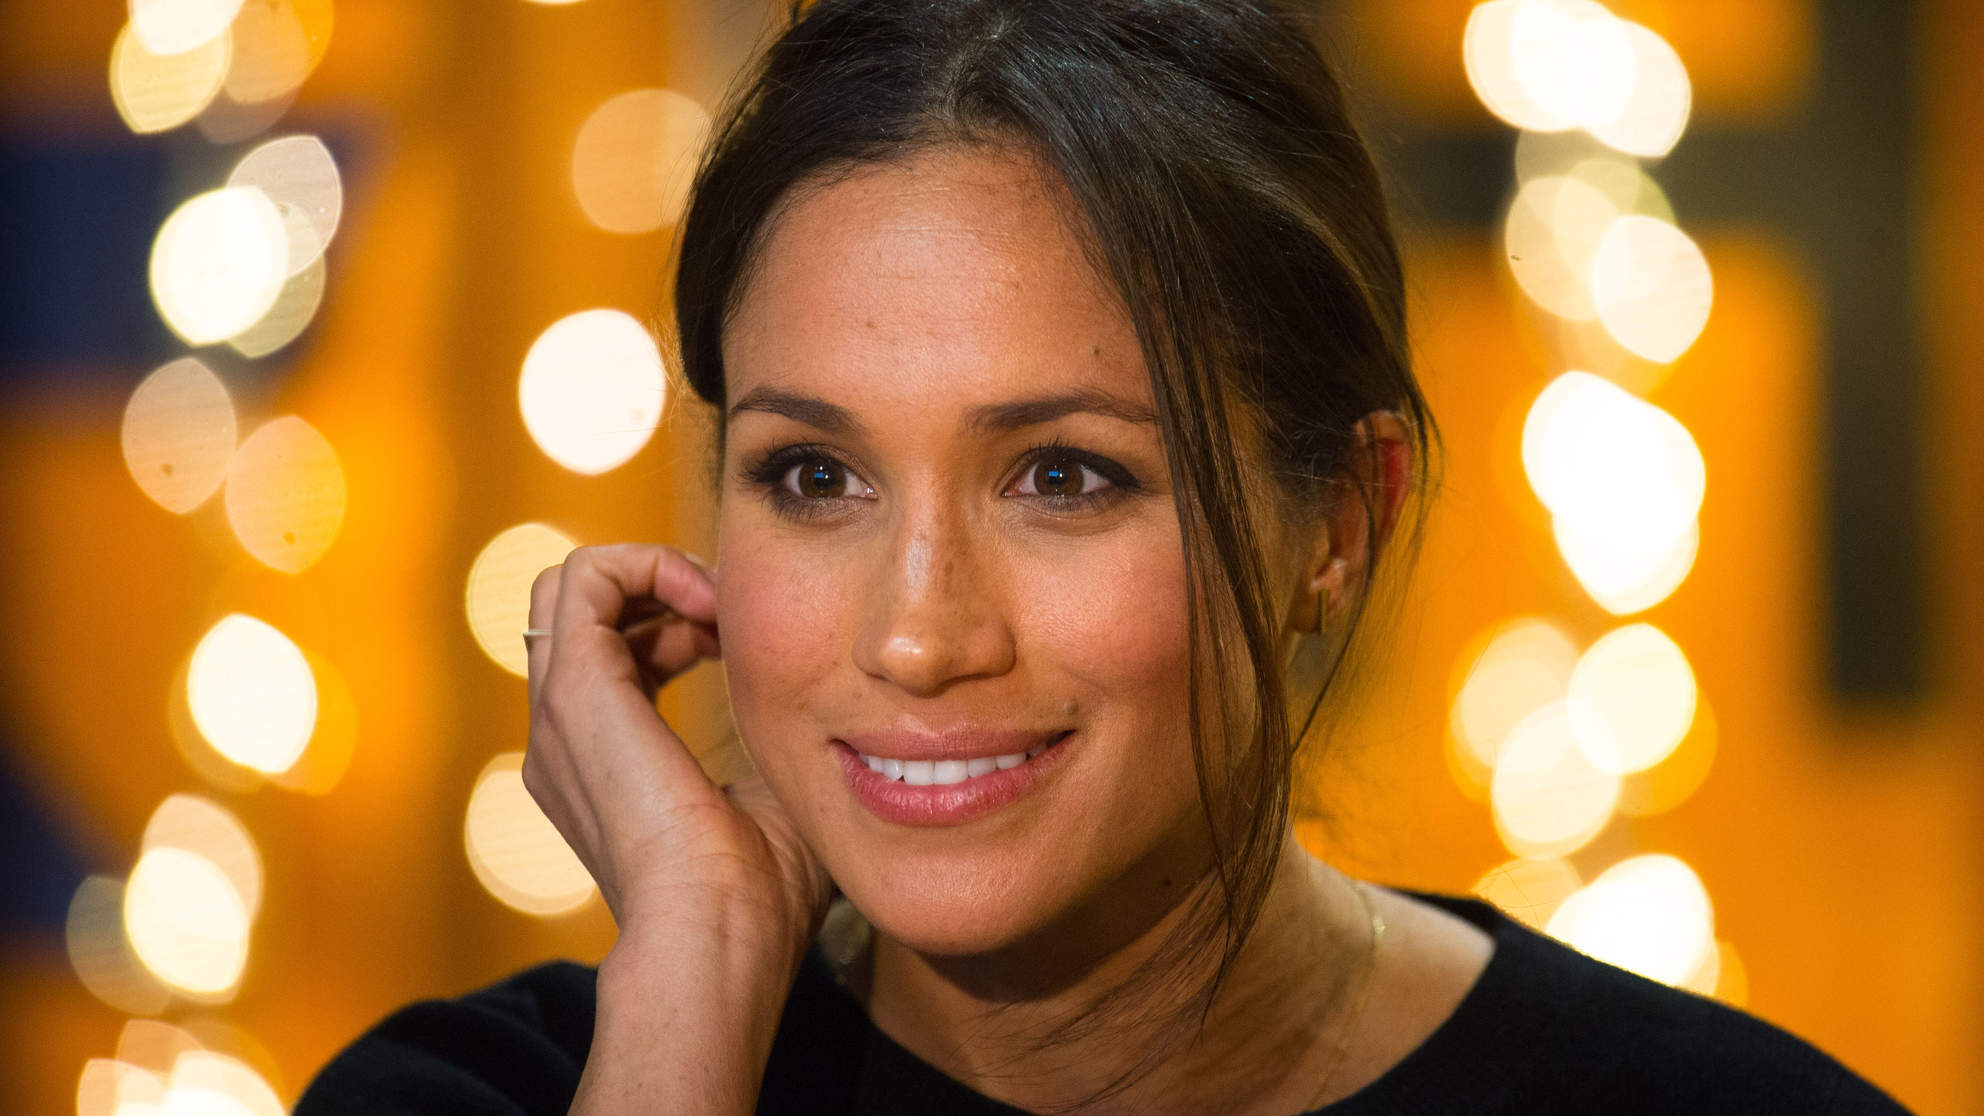 Meghan Markle Just Dropped Her Own Major Royal Baby Hint!